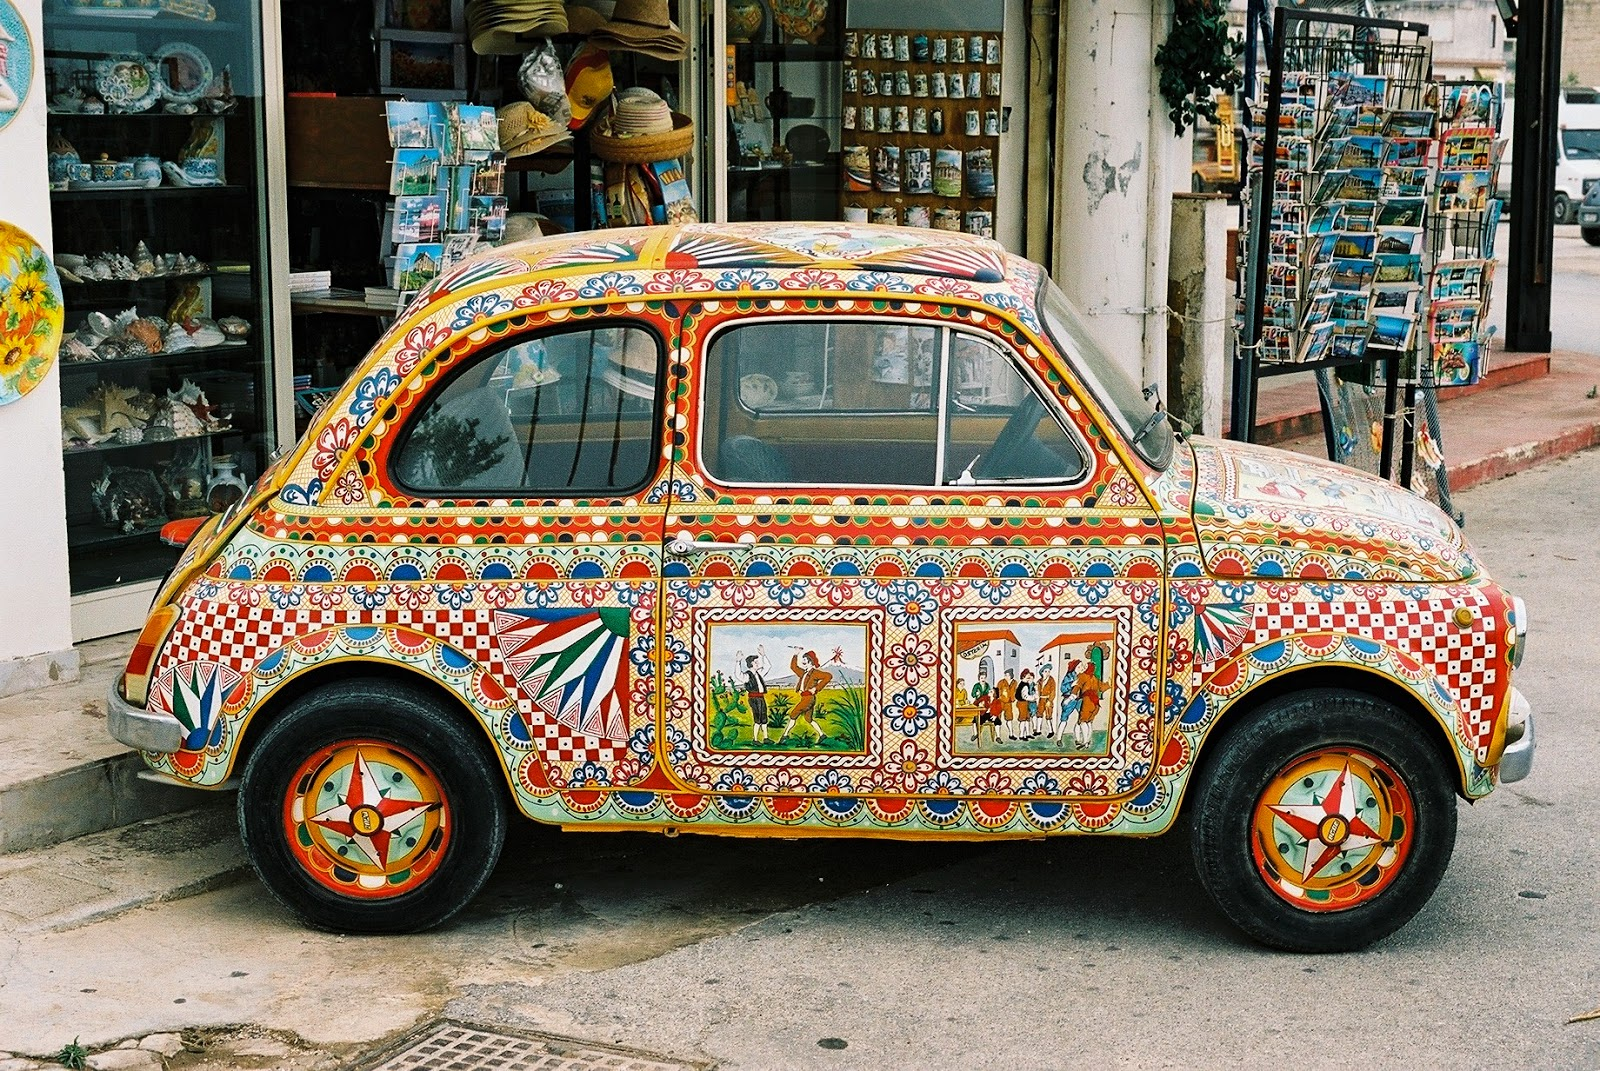 FIAT 500, SICILIAN CART DECORATION, FOLK ART, HAND PAINTED, LA CARRETTA, GIO PONTI, BAMBINO, SELINUNTE, GRECO ROMAN RUINS, SICILY, ELEGANT DECAY, TOURISM, AGRIGENTO, 2015 GENERAL ELECTION